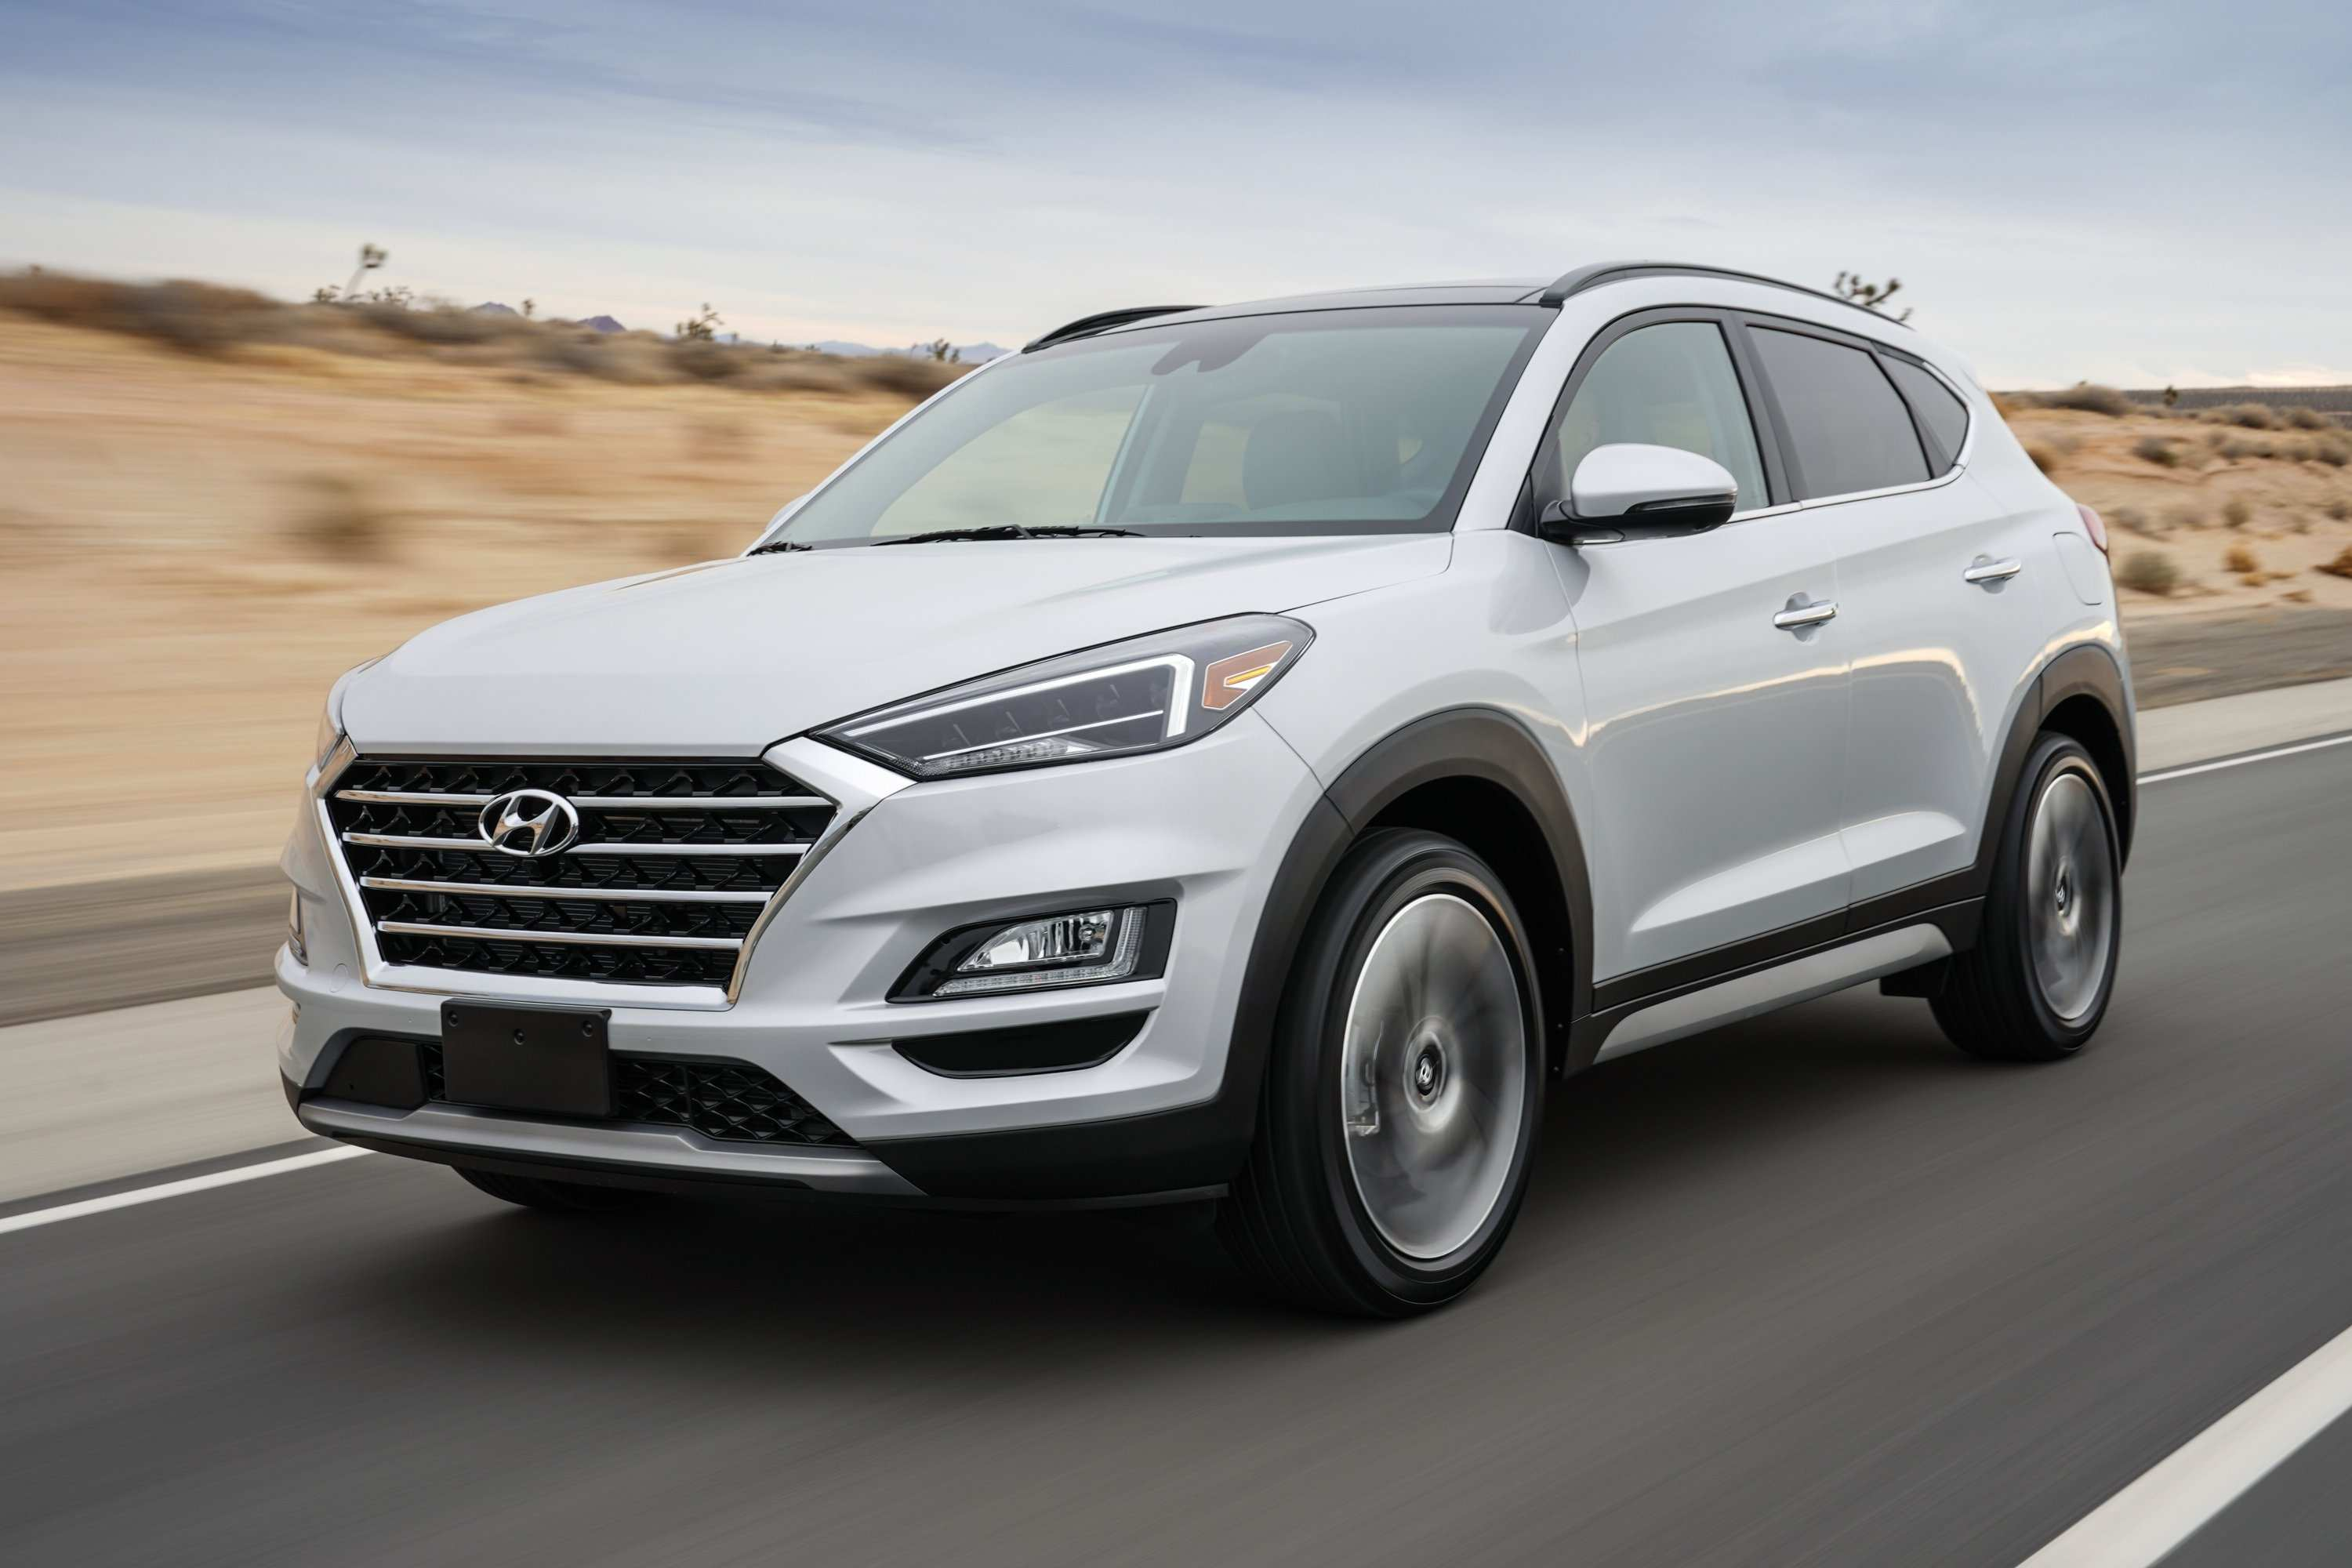 90 The Best 2020 Hyundai Ix35 Overview